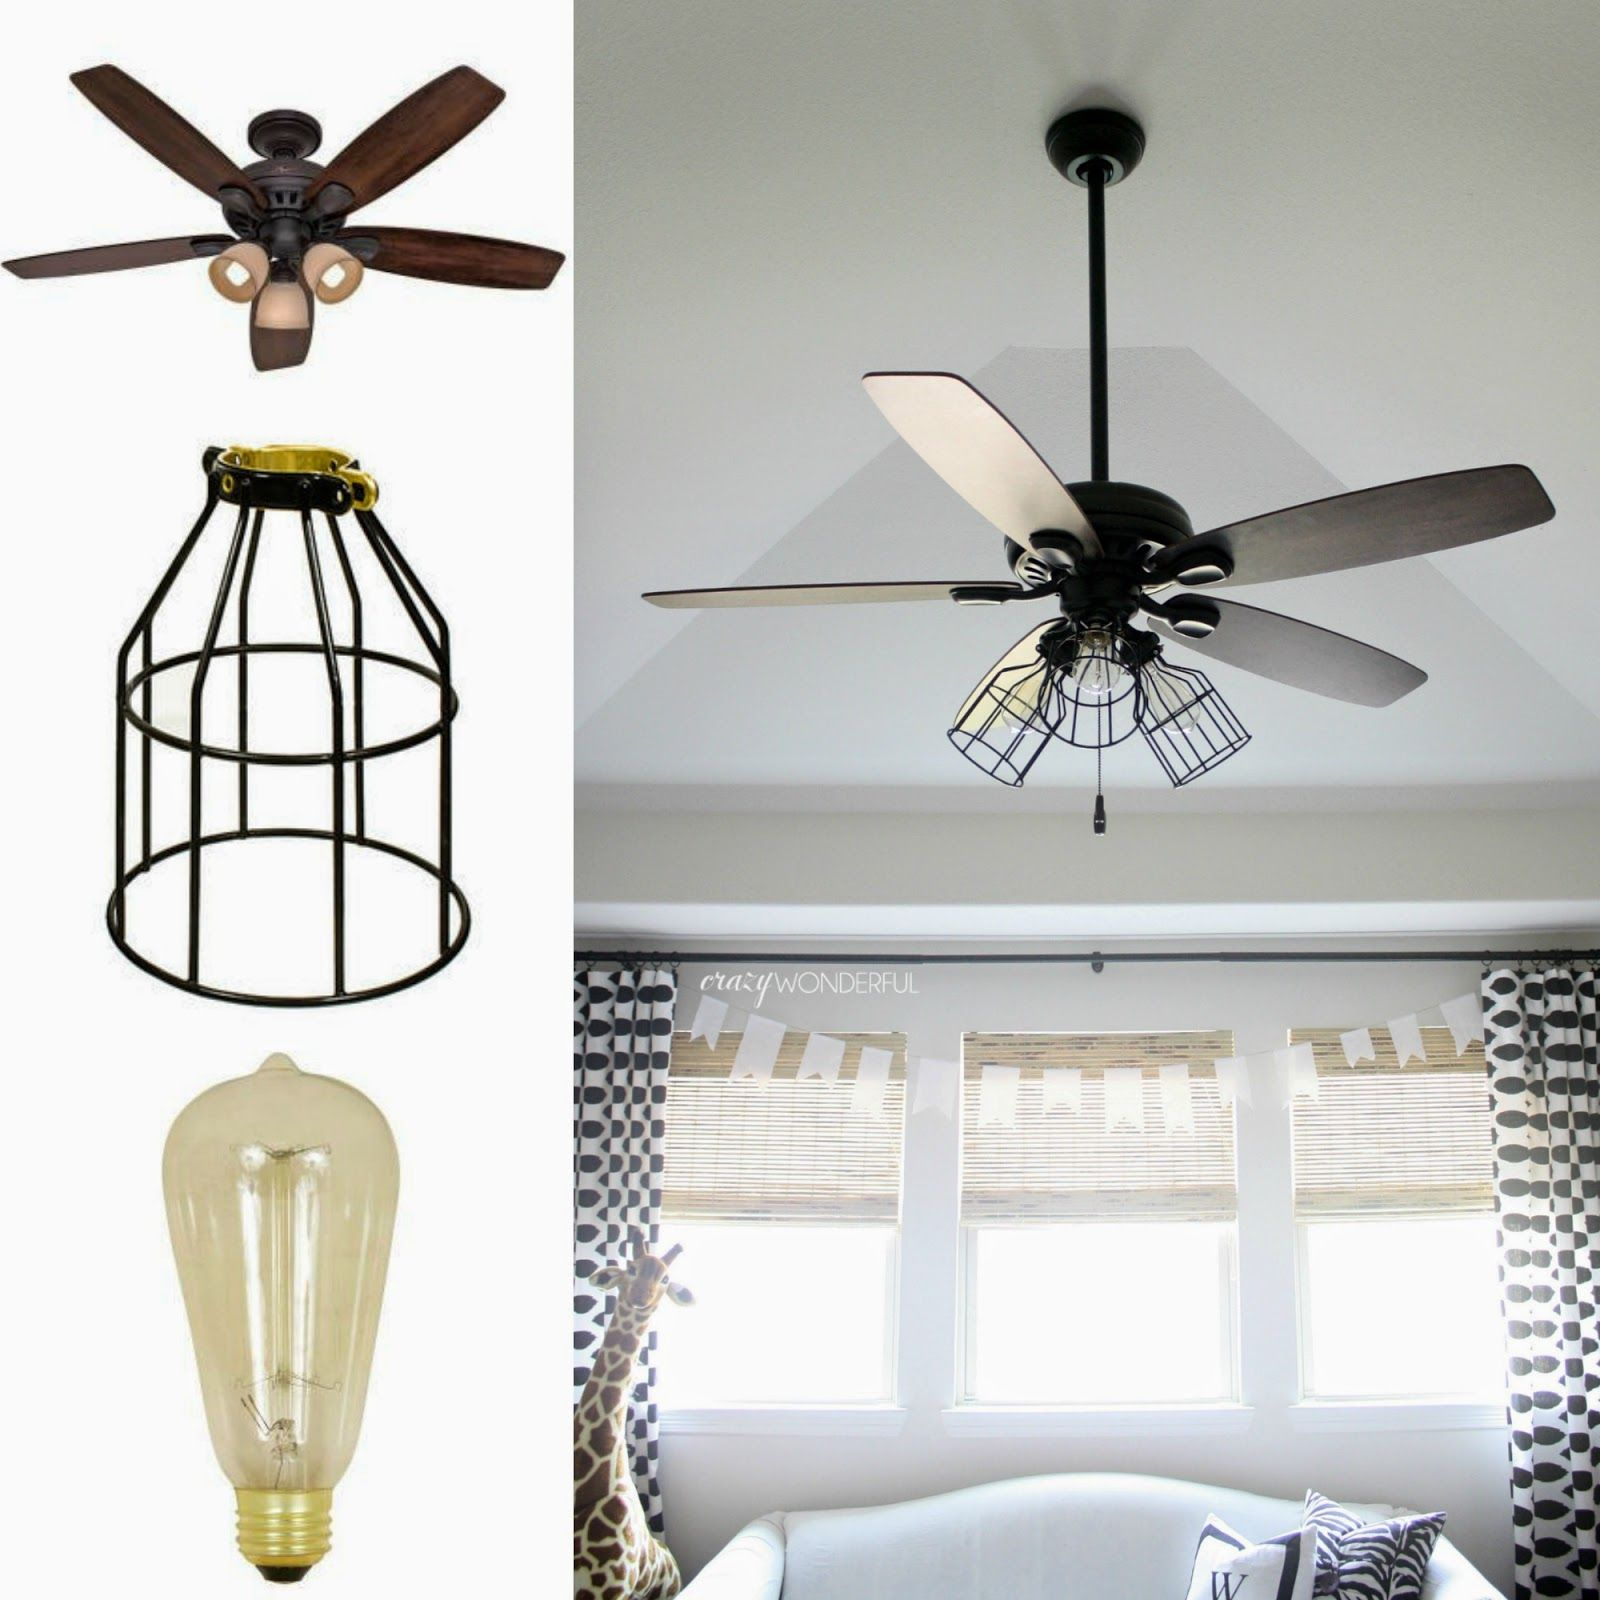 Crazy wonderful diy cage light ceiling fan crazy wonderful blog crazy wonderful diy cage light ceiling fan aloadofball